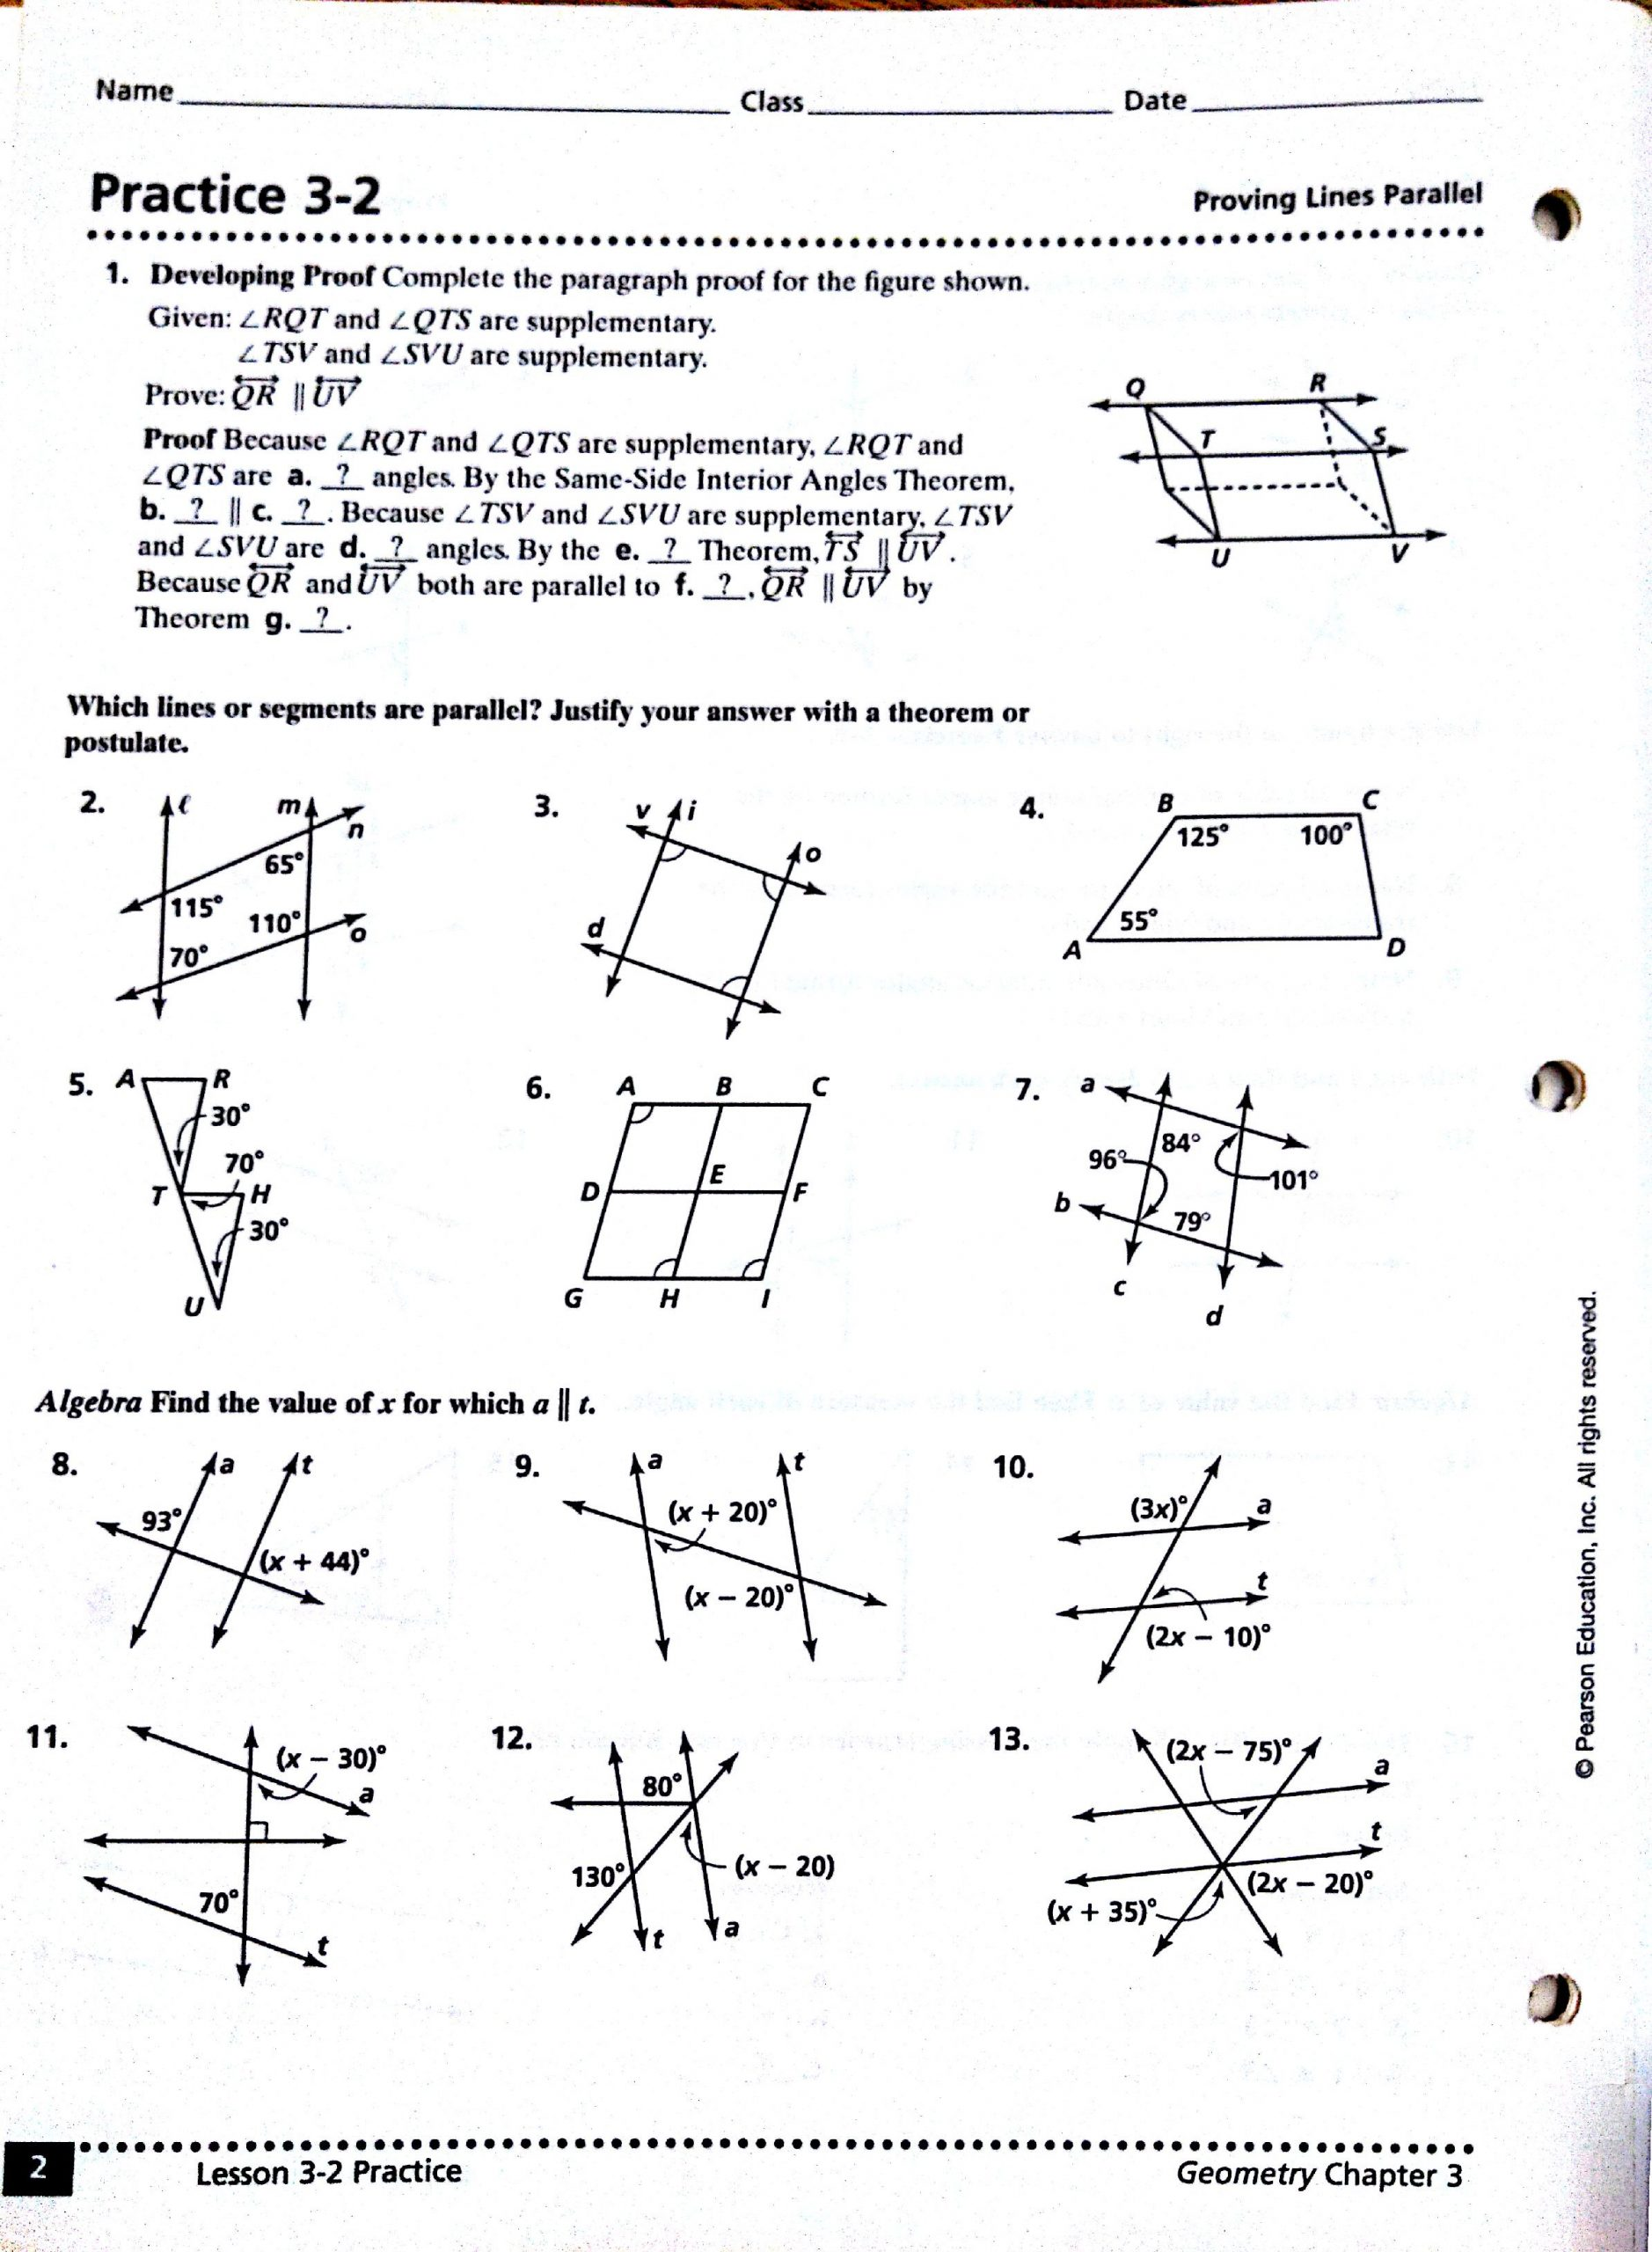 Algebraic Proofs Worksheet with Answers Introductory Geometry Proofs Worksheet